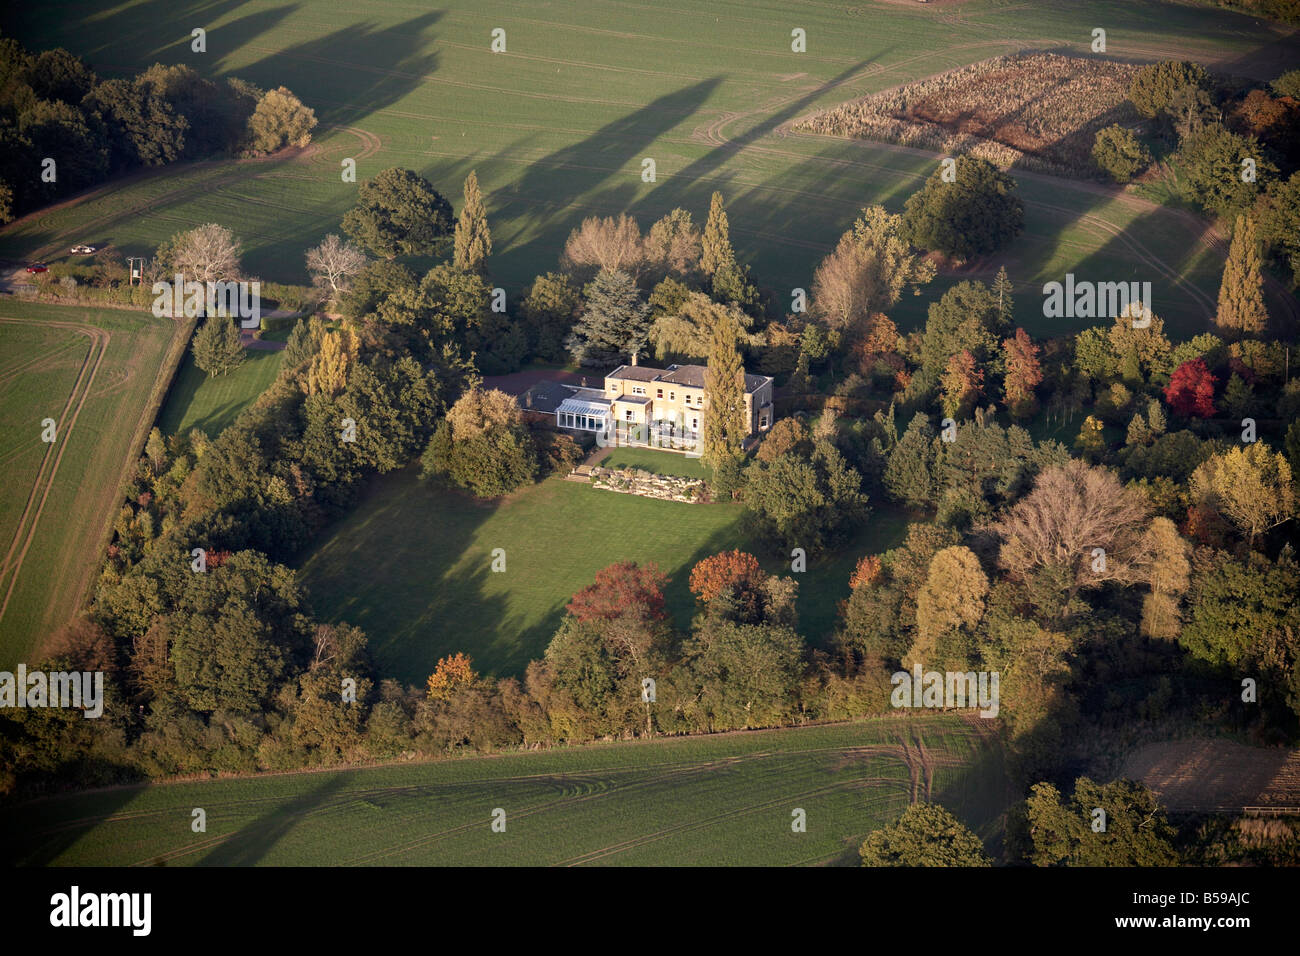 Aerial view north east of country house and garden country fields trees Hoe Lane Lambourne Romford Epping Forest - Stock Image